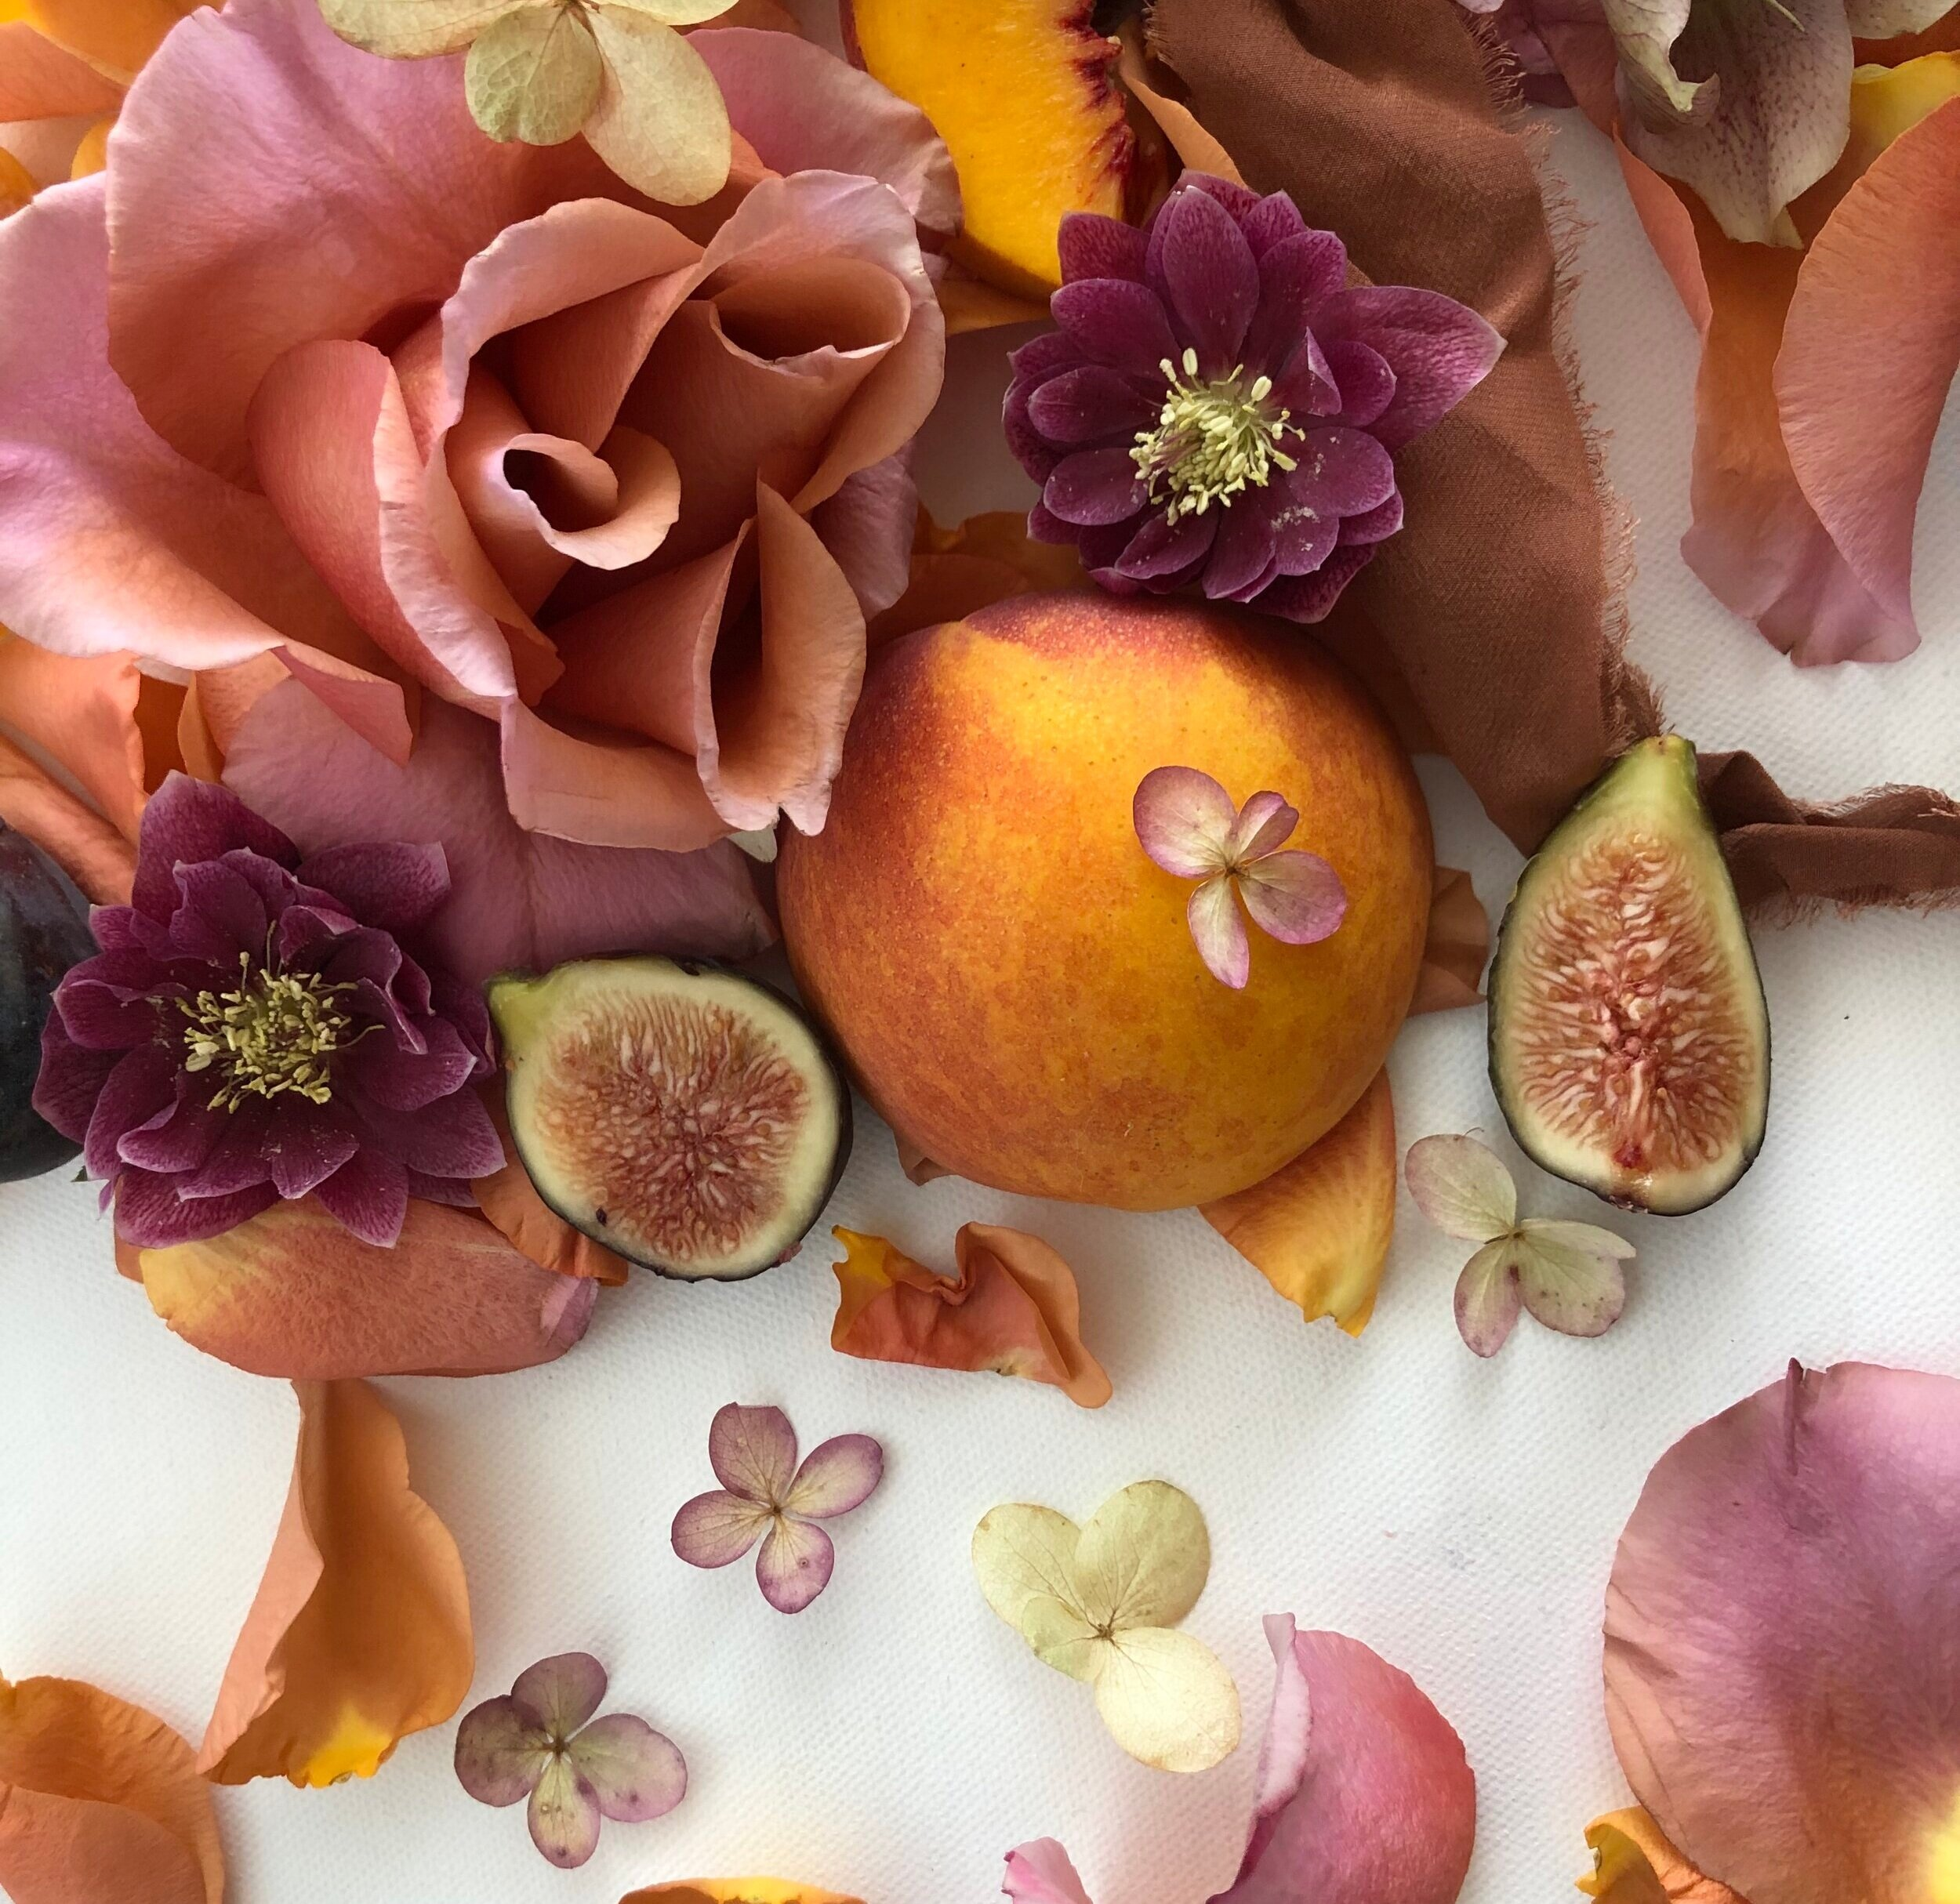 printed by everbloom - a collection of photographed florals